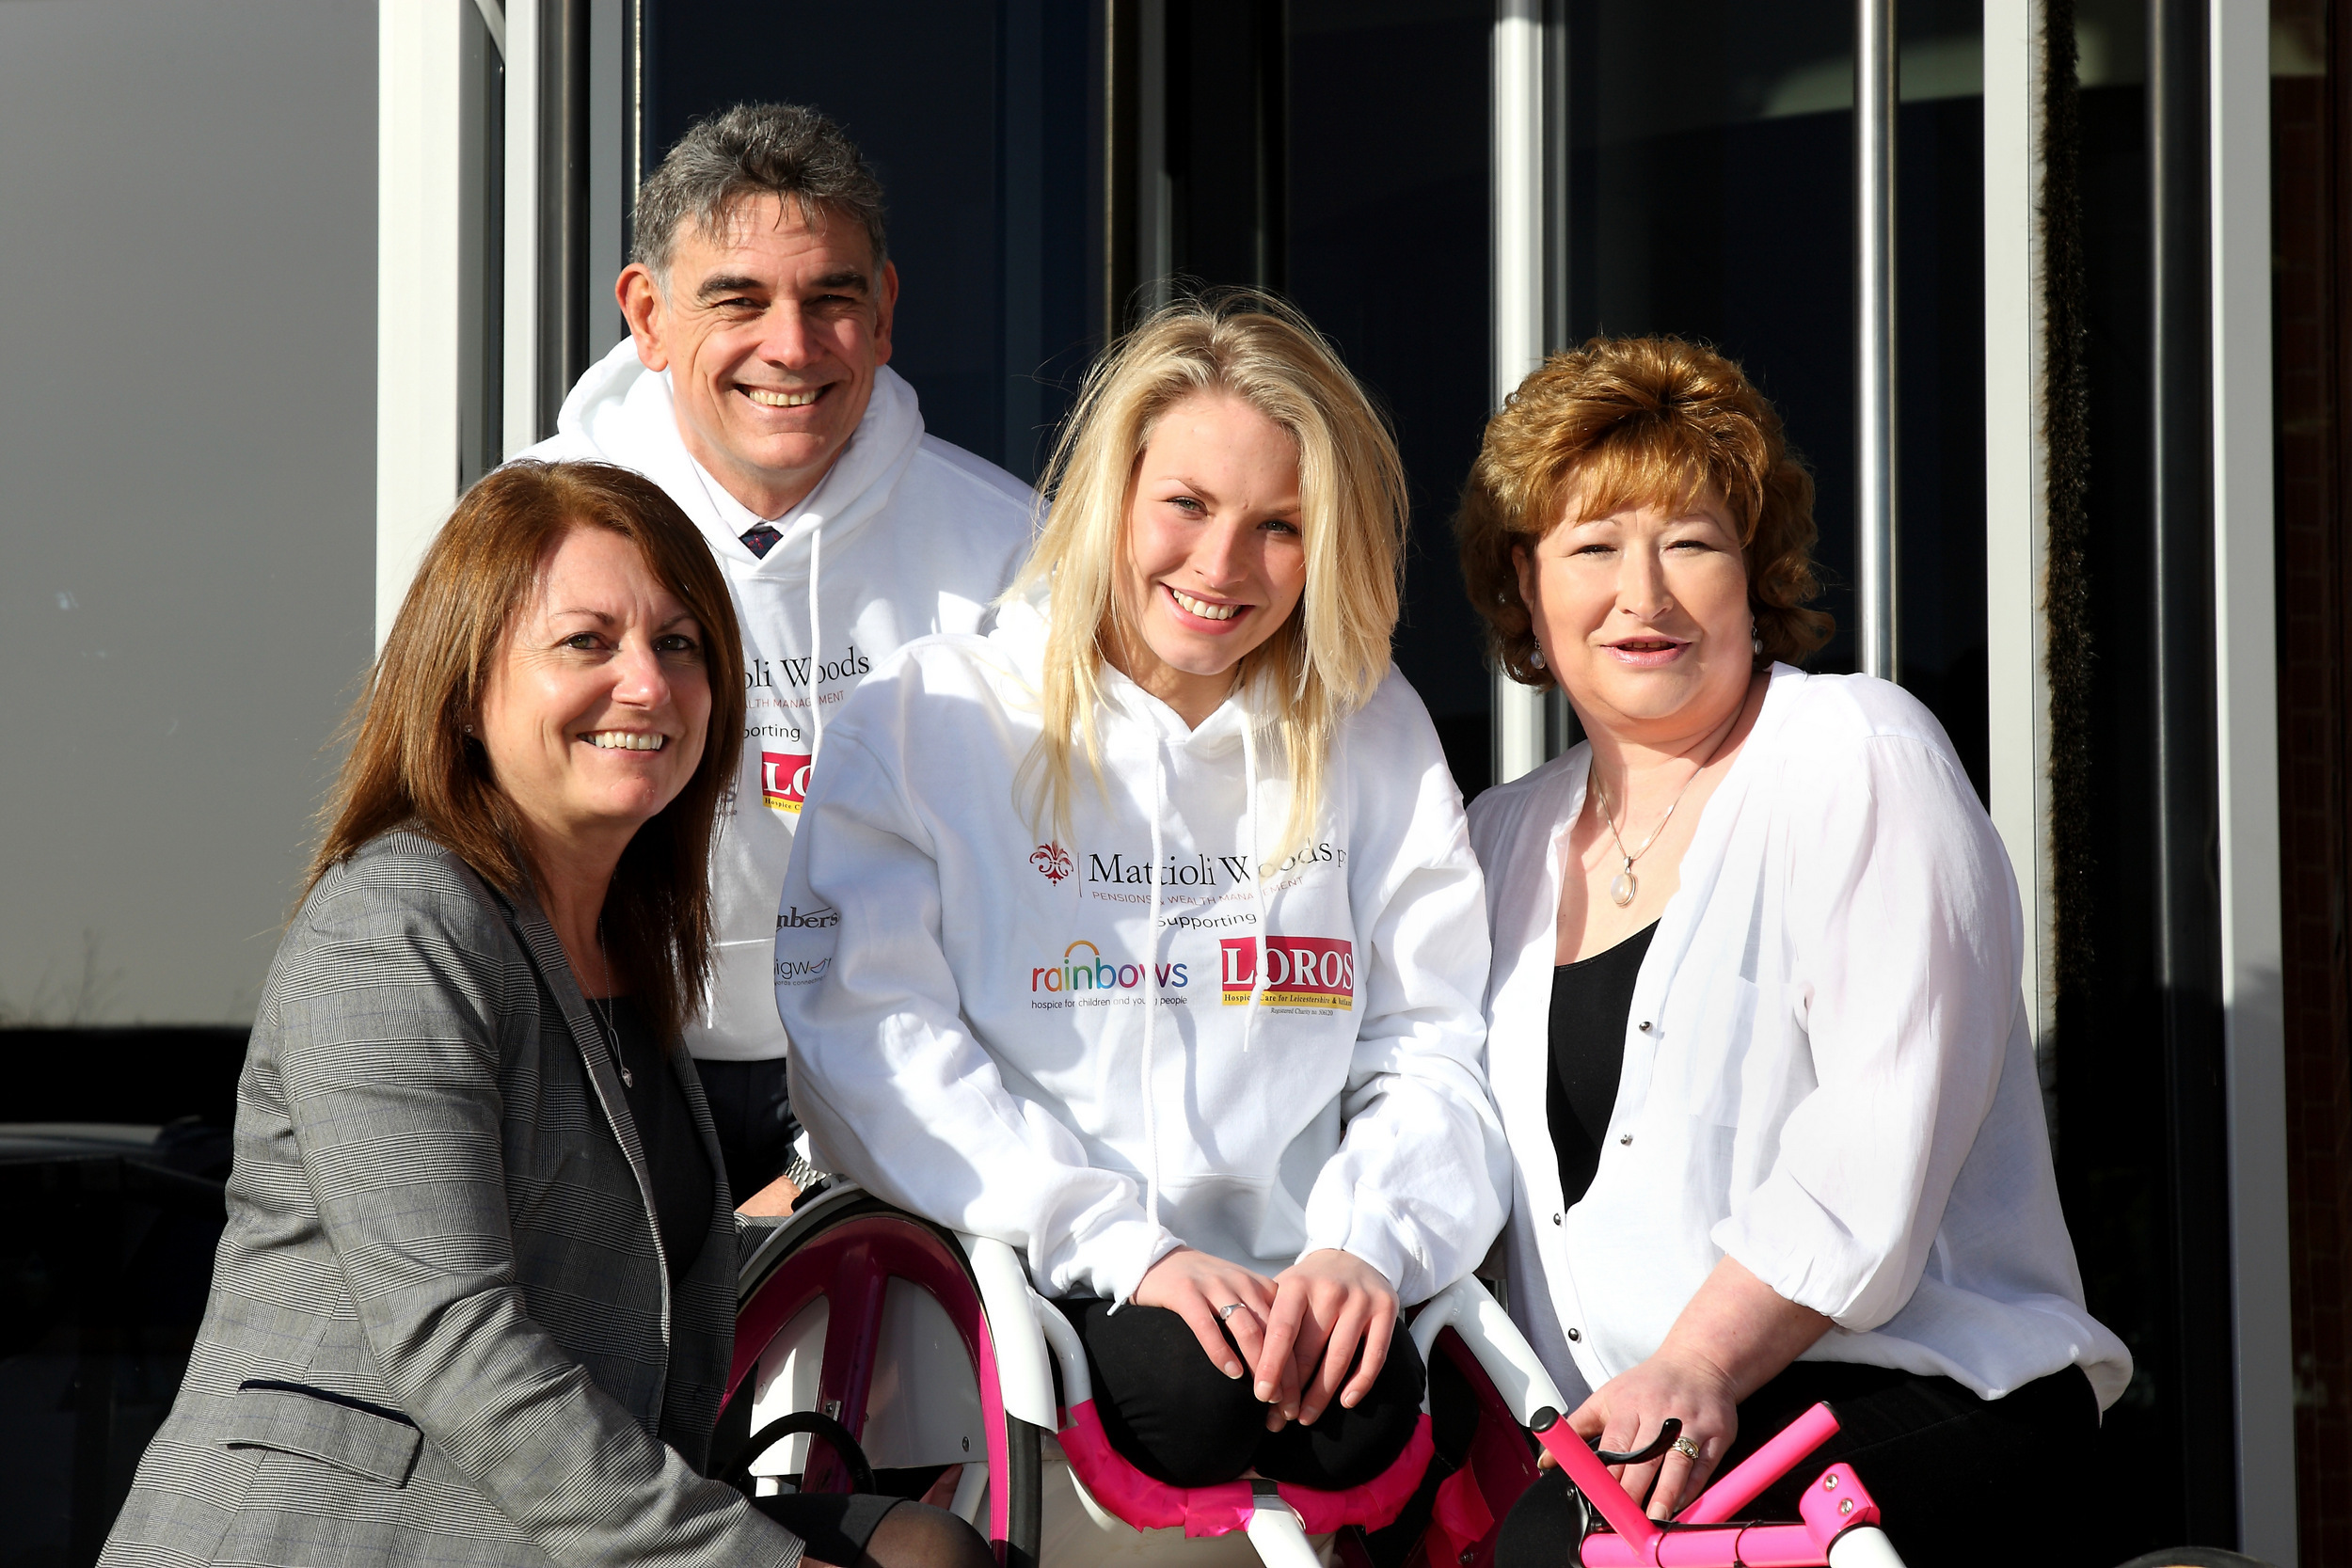 Sammi Kinghorn, centre, with Ian Mattioli, co-founder and chief executive officer of Mattioli Woods. Left is Clare Mattioli, Ian's wife. Right is Sammi's mum, Elaine.